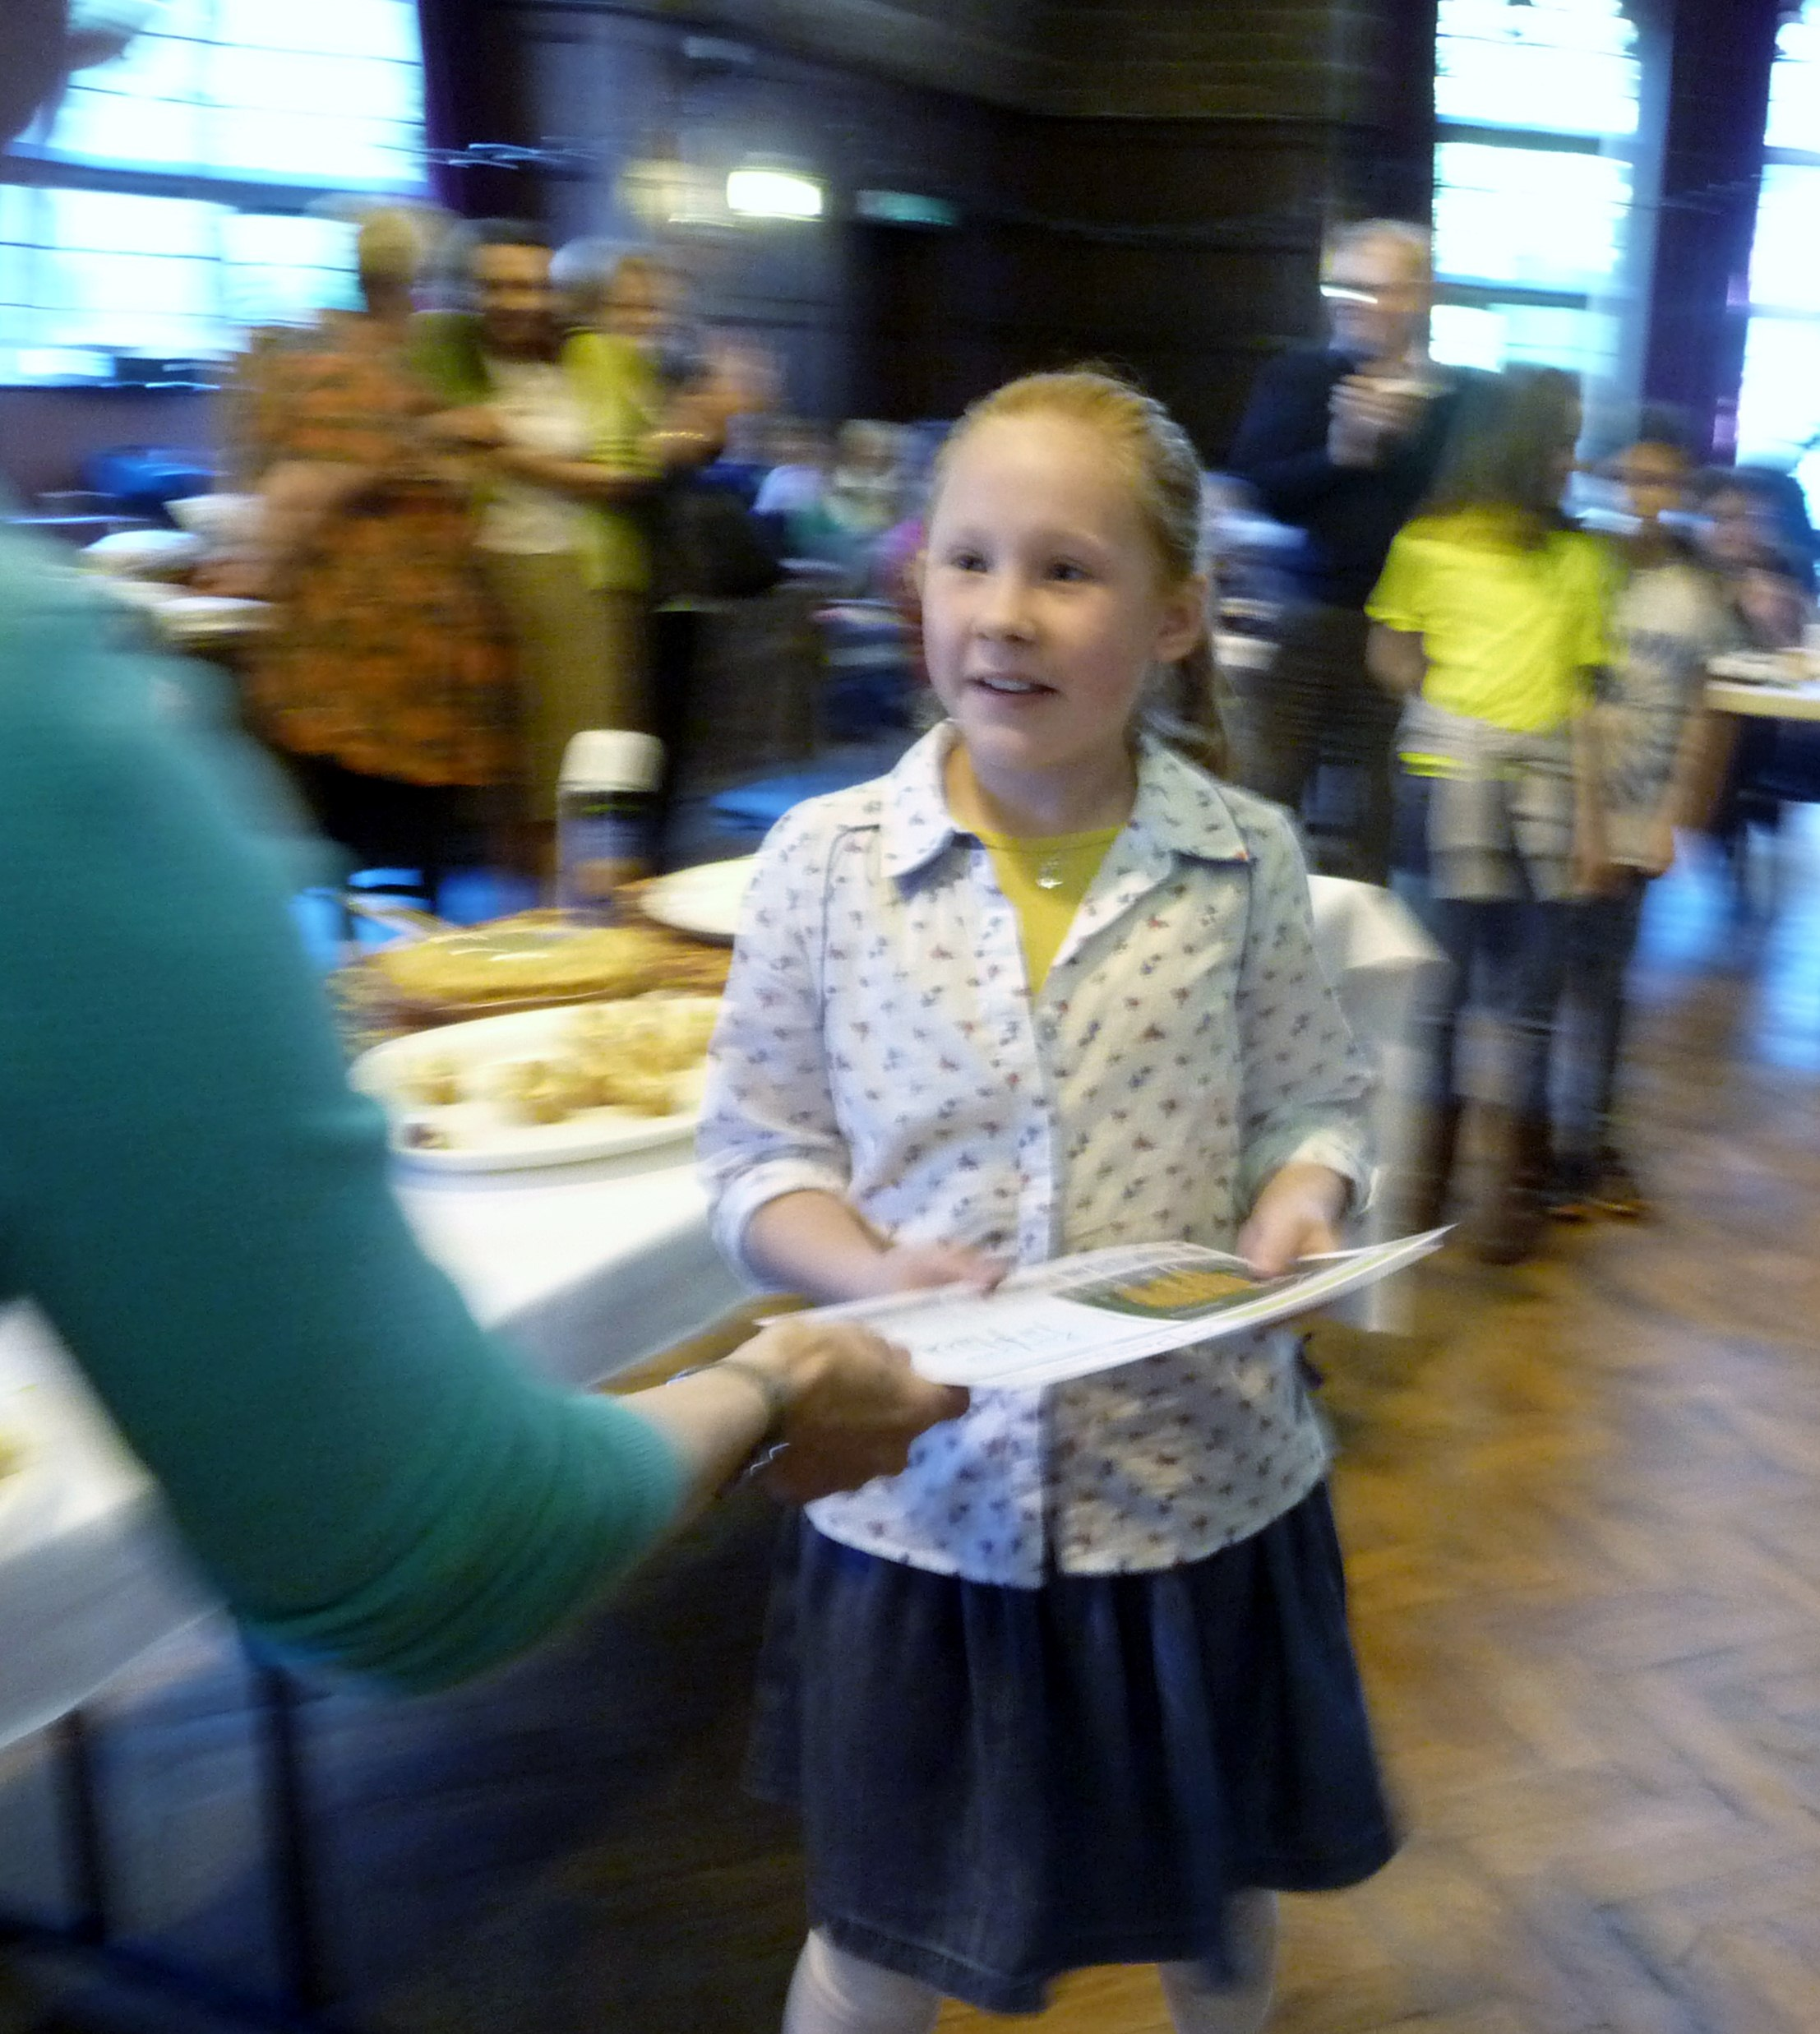 one of our Merseyside Young Embroiderers receiving her certificate for helping to embroider 'The Golden Fleece', winner of the Group Award in de Denne competition 2015